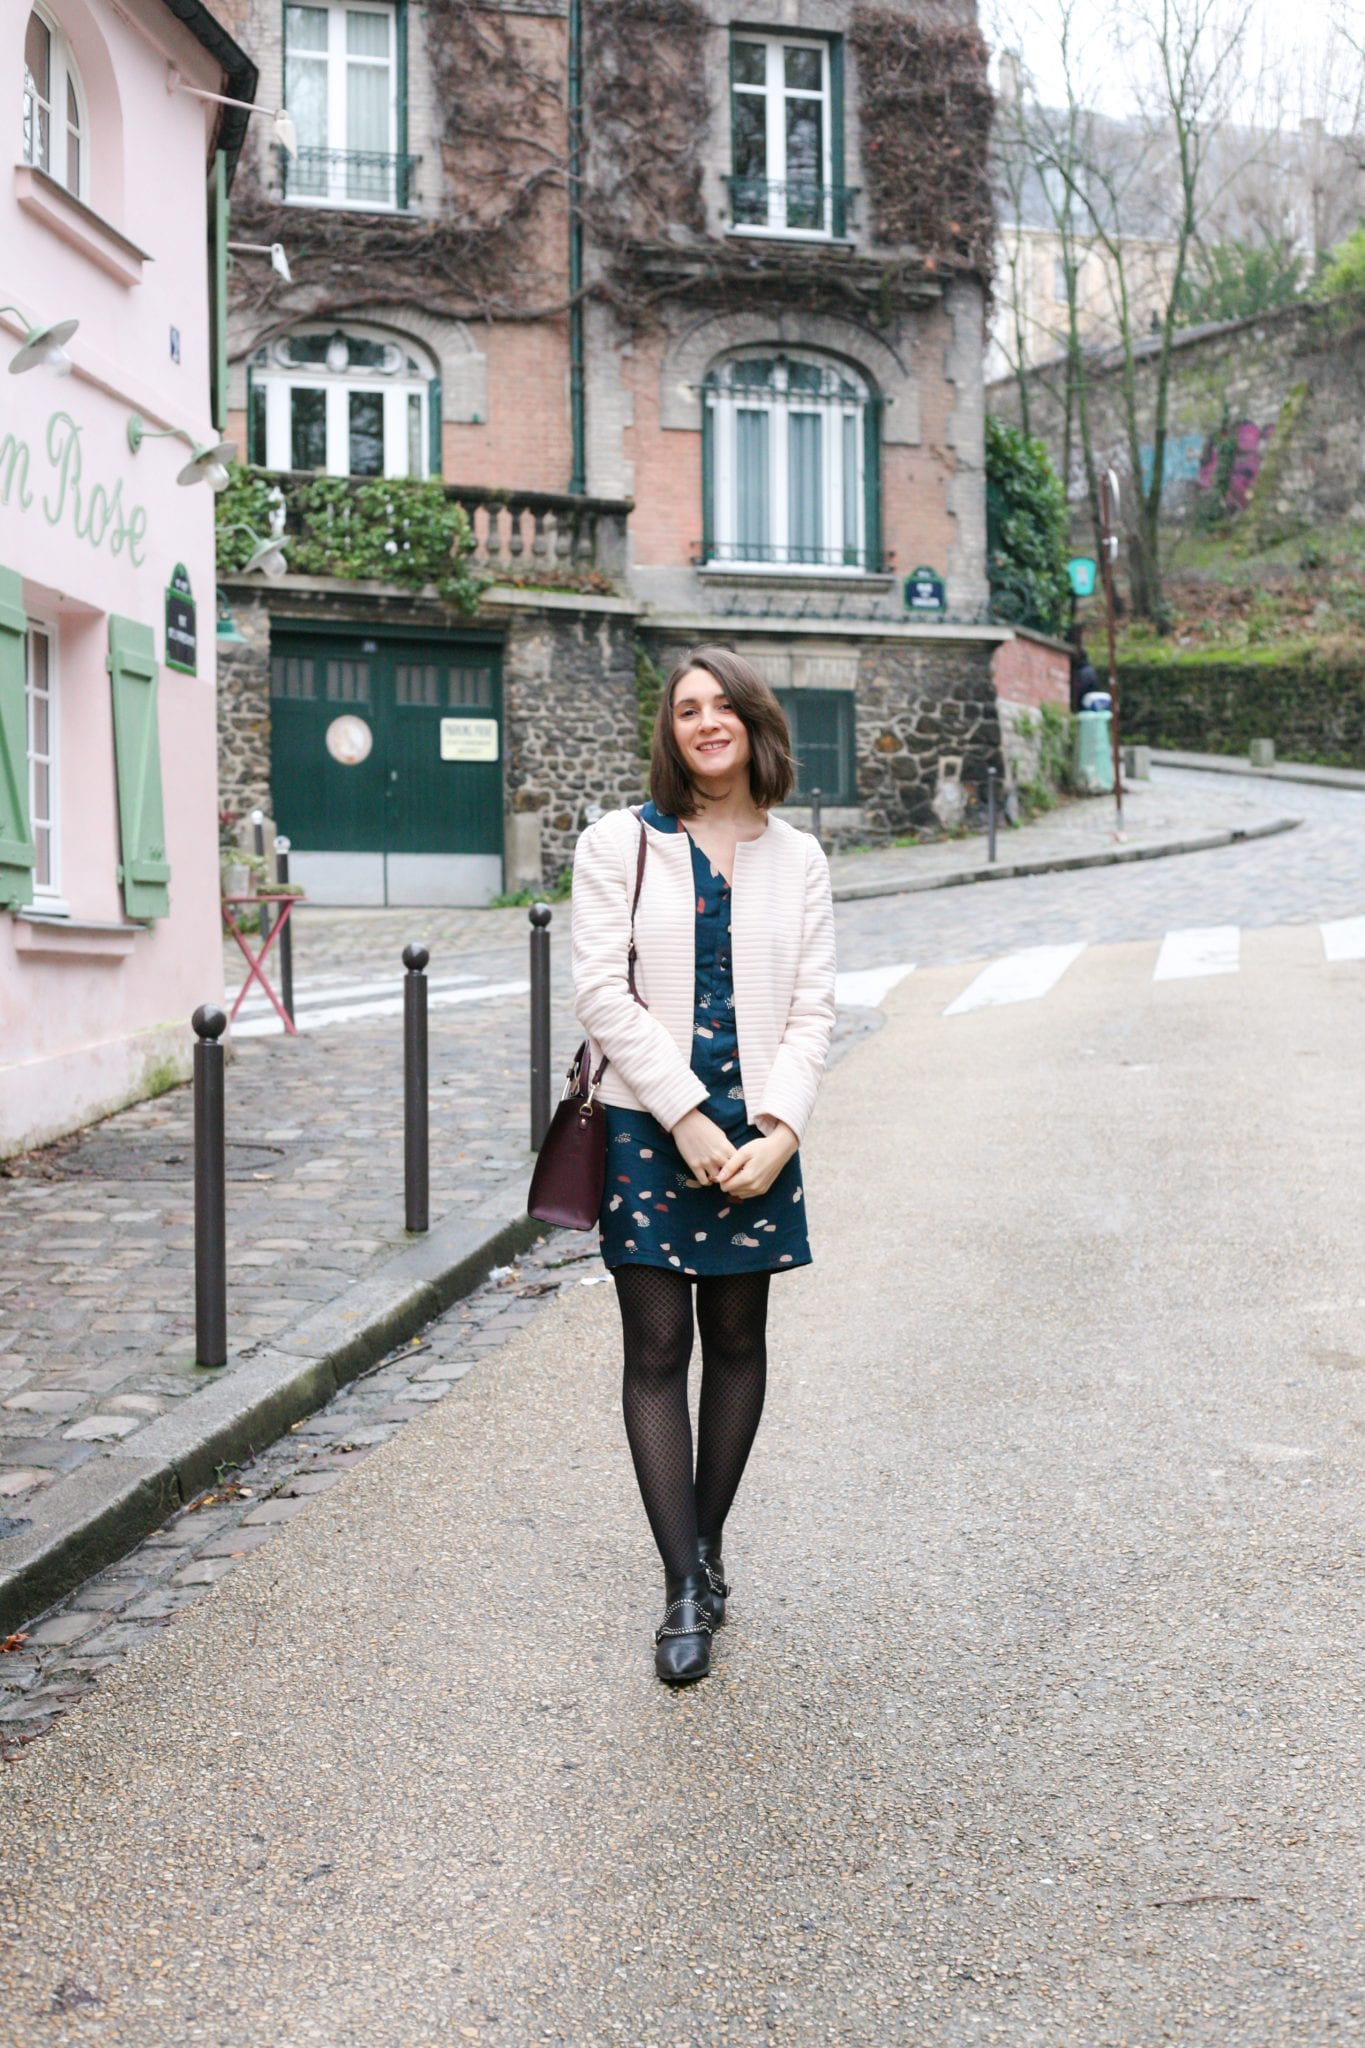 Un look casual // robe bleue-vert imprimée, veste rose poudré et sac bordeaux // blog mode-couture-some place called home